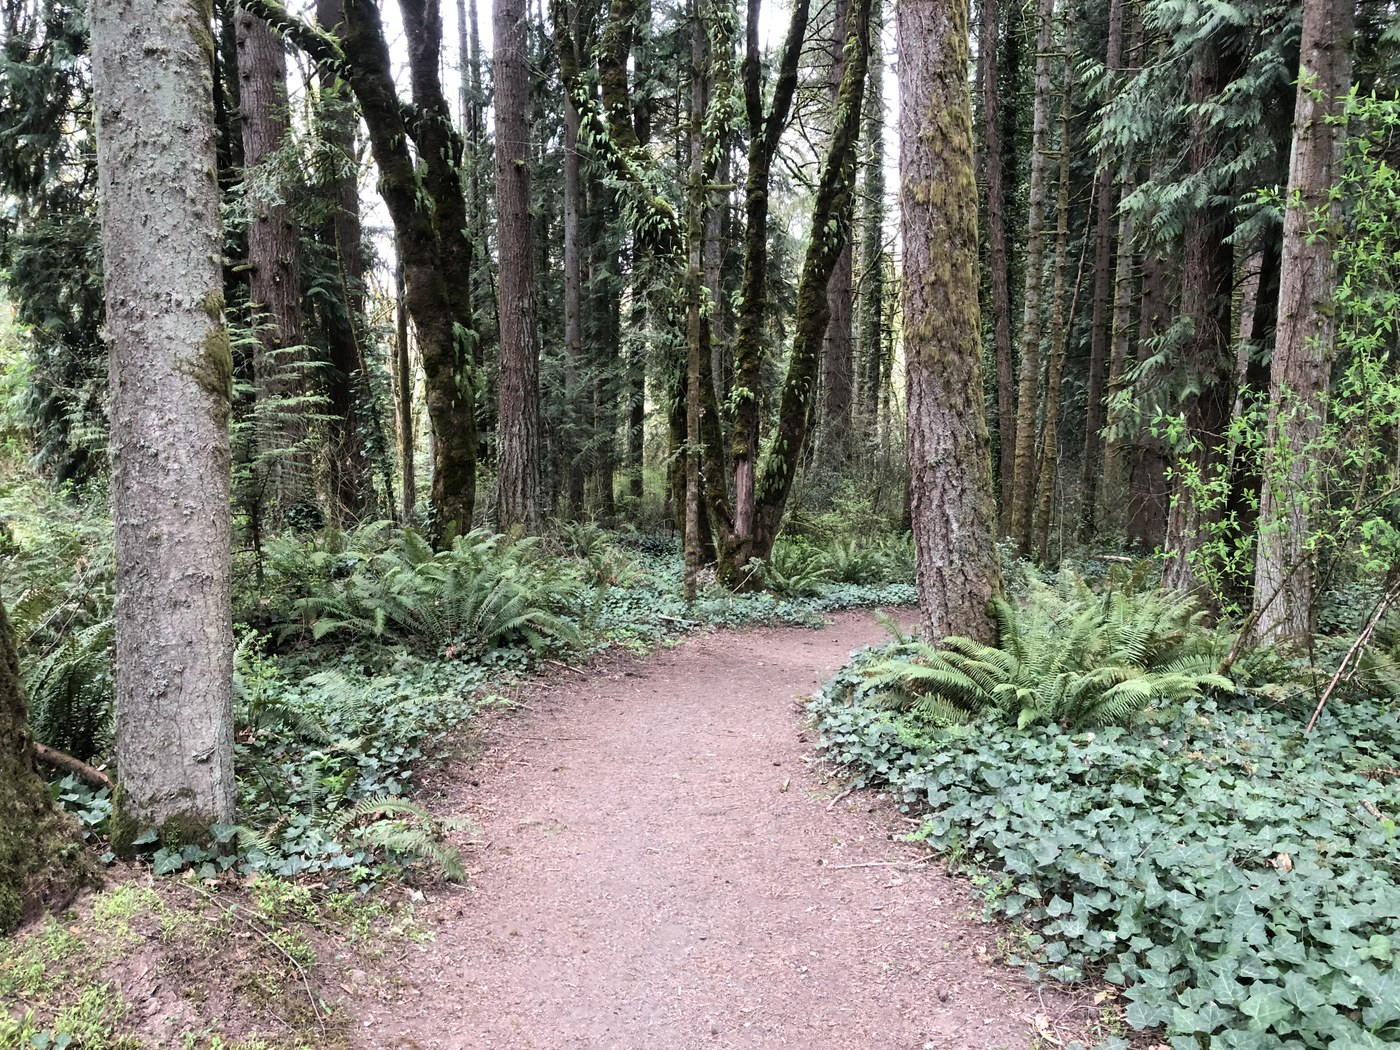 A wide trail of brown dirt leads into the trees. Photo by knchaika.